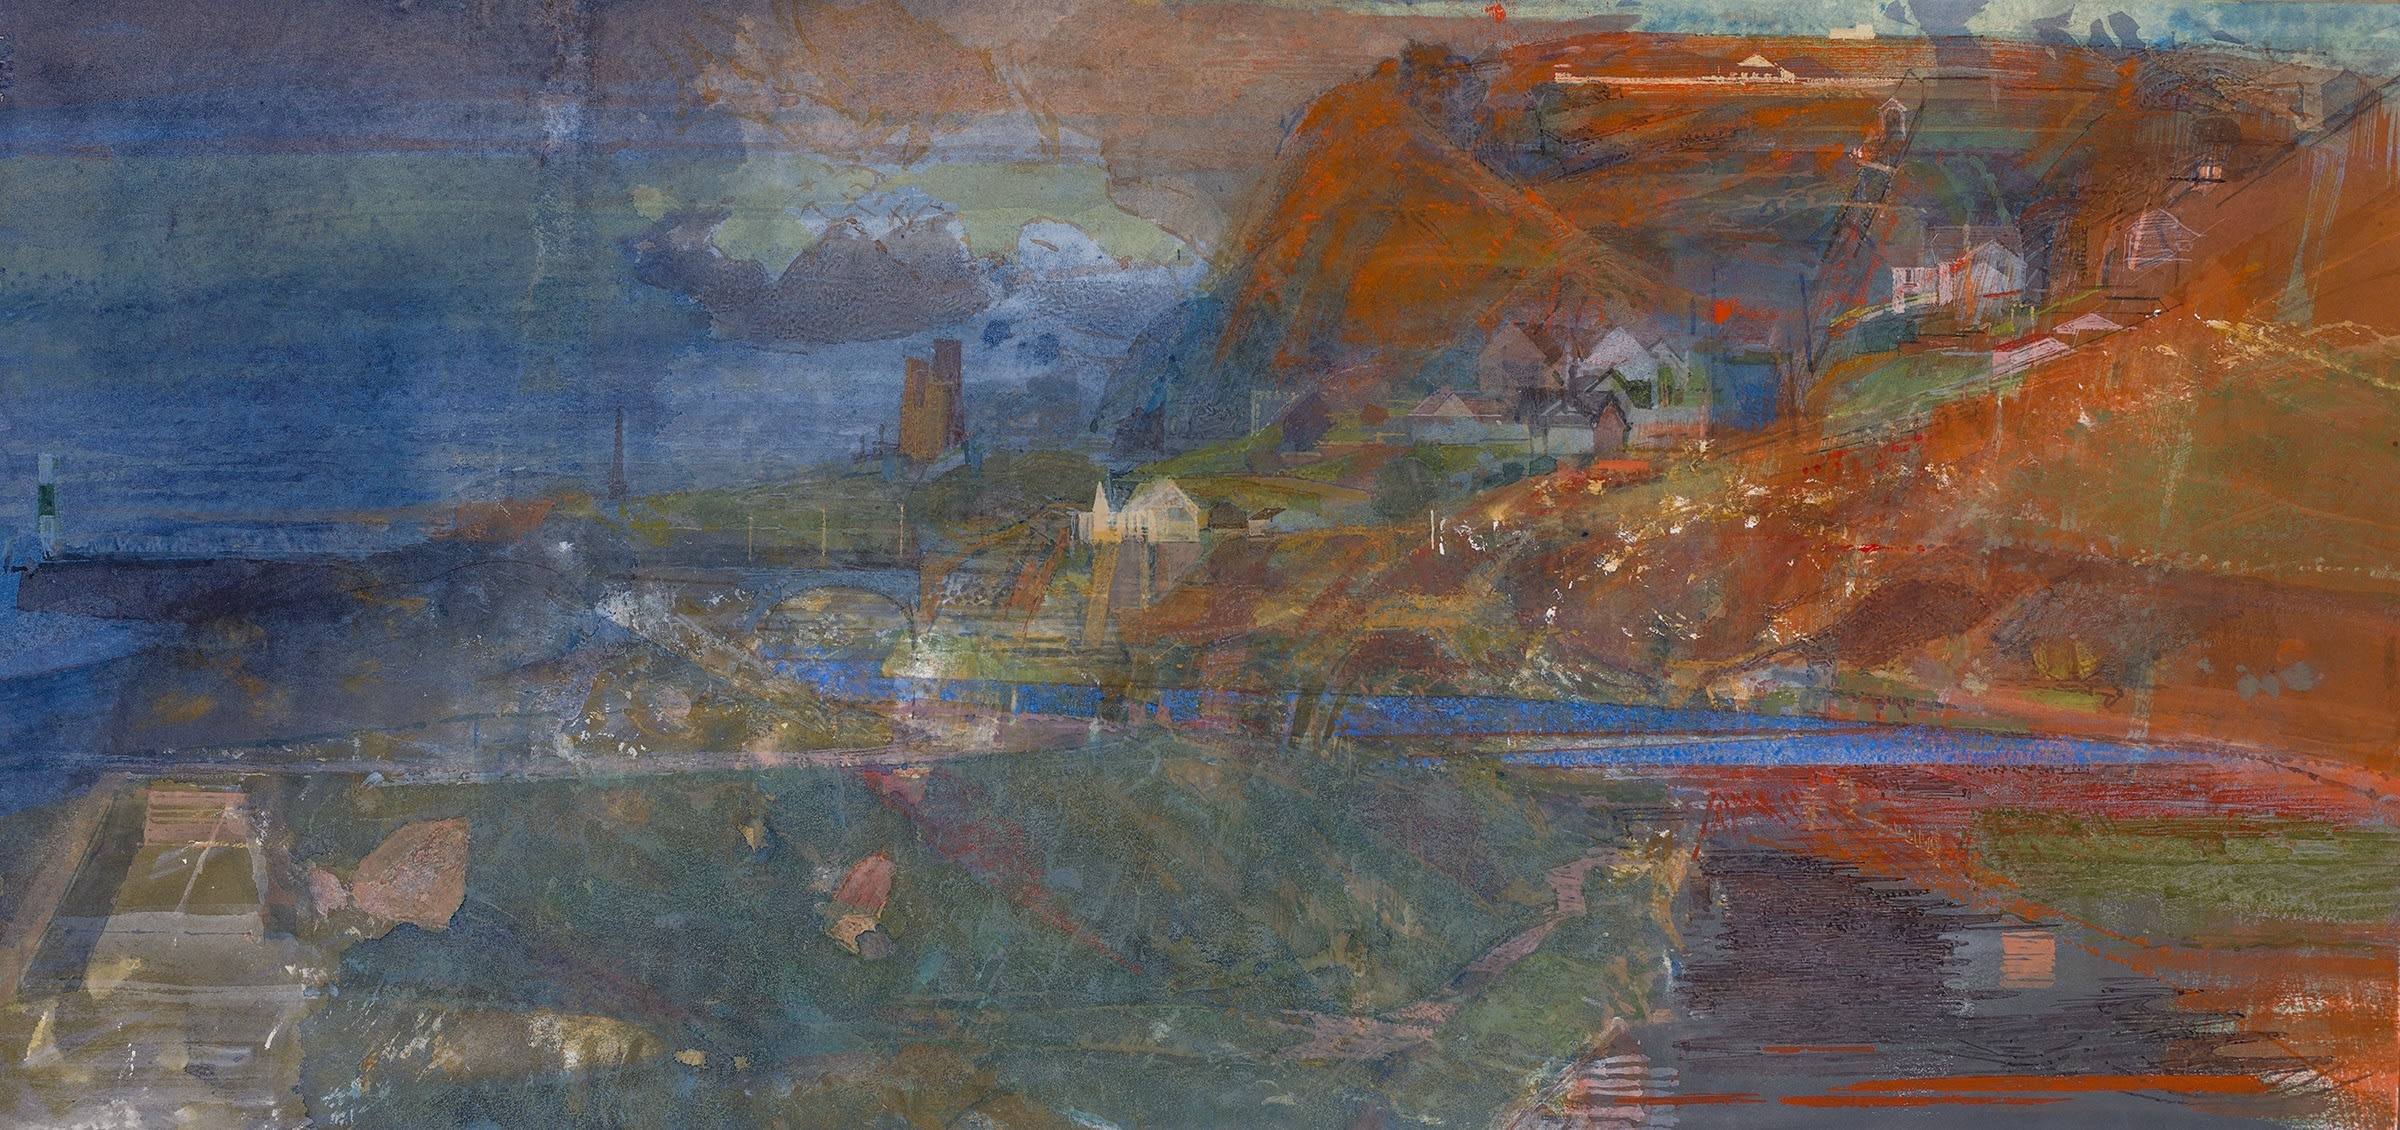 """<span class=""""link fancybox-details-link""""><a href=""""/artists/87-paul-newland/works/11786-paul-newland-near-the-mouth-of-the-ystwyth/"""">View Detail Page</a></span><div class=""""artist""""><span class=""""artist""""><strong>Paul Newland</strong></span></div><div class=""""title""""><em>Near the mouth of the Ystwyth</em></div><div class=""""medium"""">watercolour</div><div class=""""dimensions"""">Frame: 49 x 80 cm<br /> Artwork: 38 x 66 cm</div><div class=""""price"""">£1,850.00</div>"""